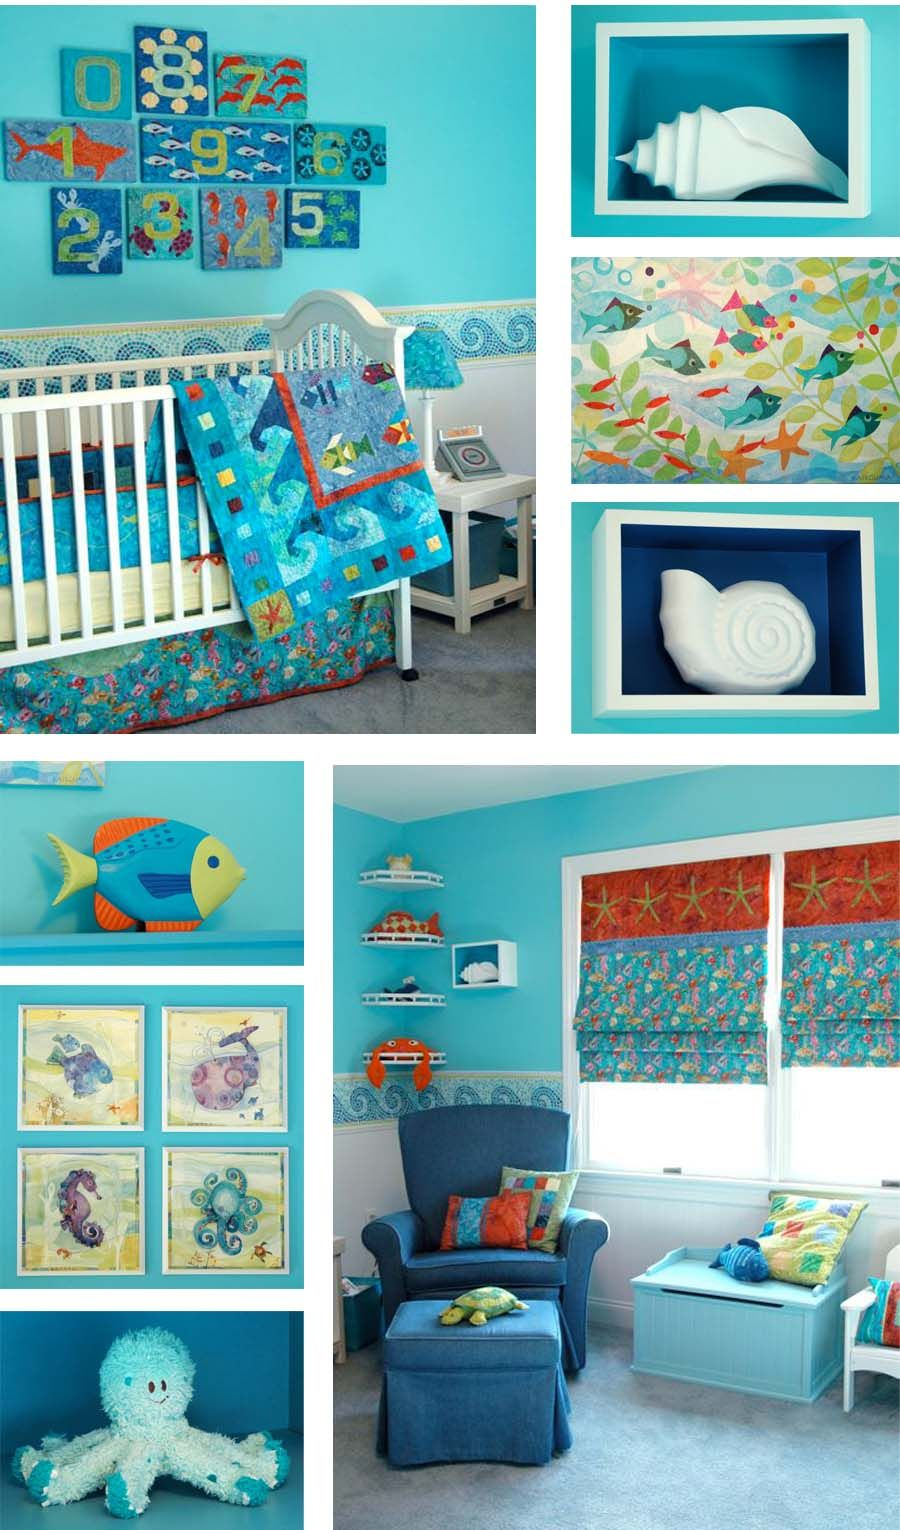 Ideas for Jakob's Room. Use ideas, and adapt the theme.